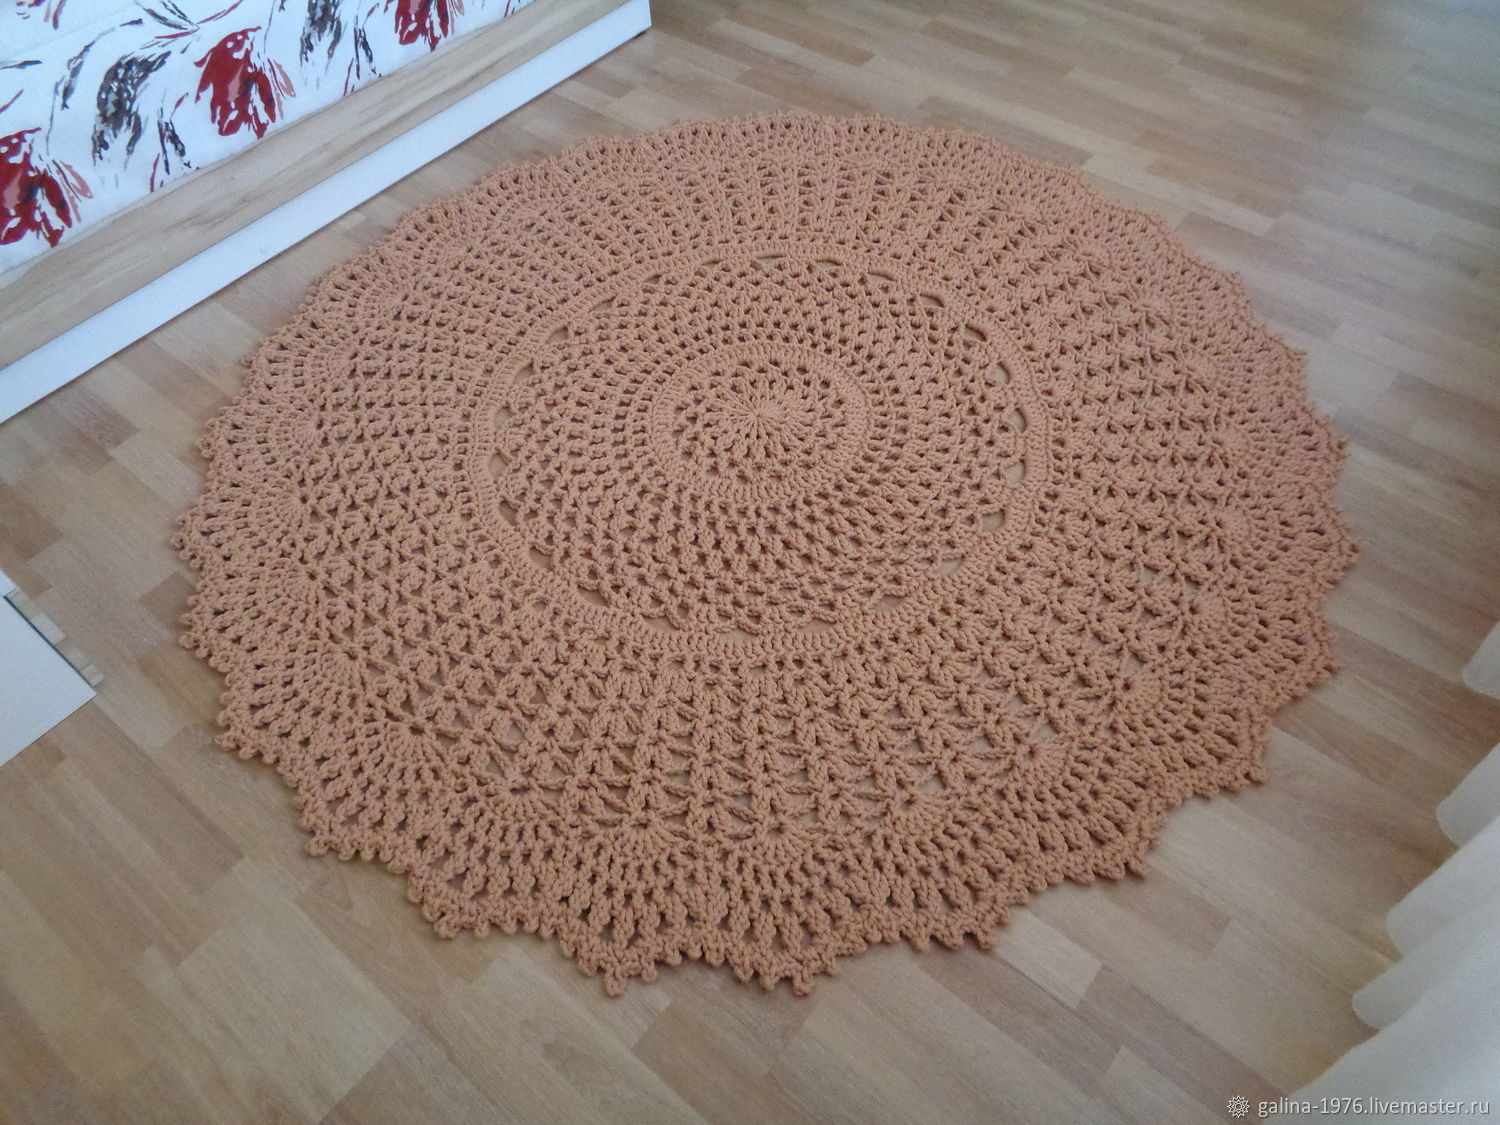 Knitted carpet 'Humility Maxi', Carpets, Voronezh,  Фото №1